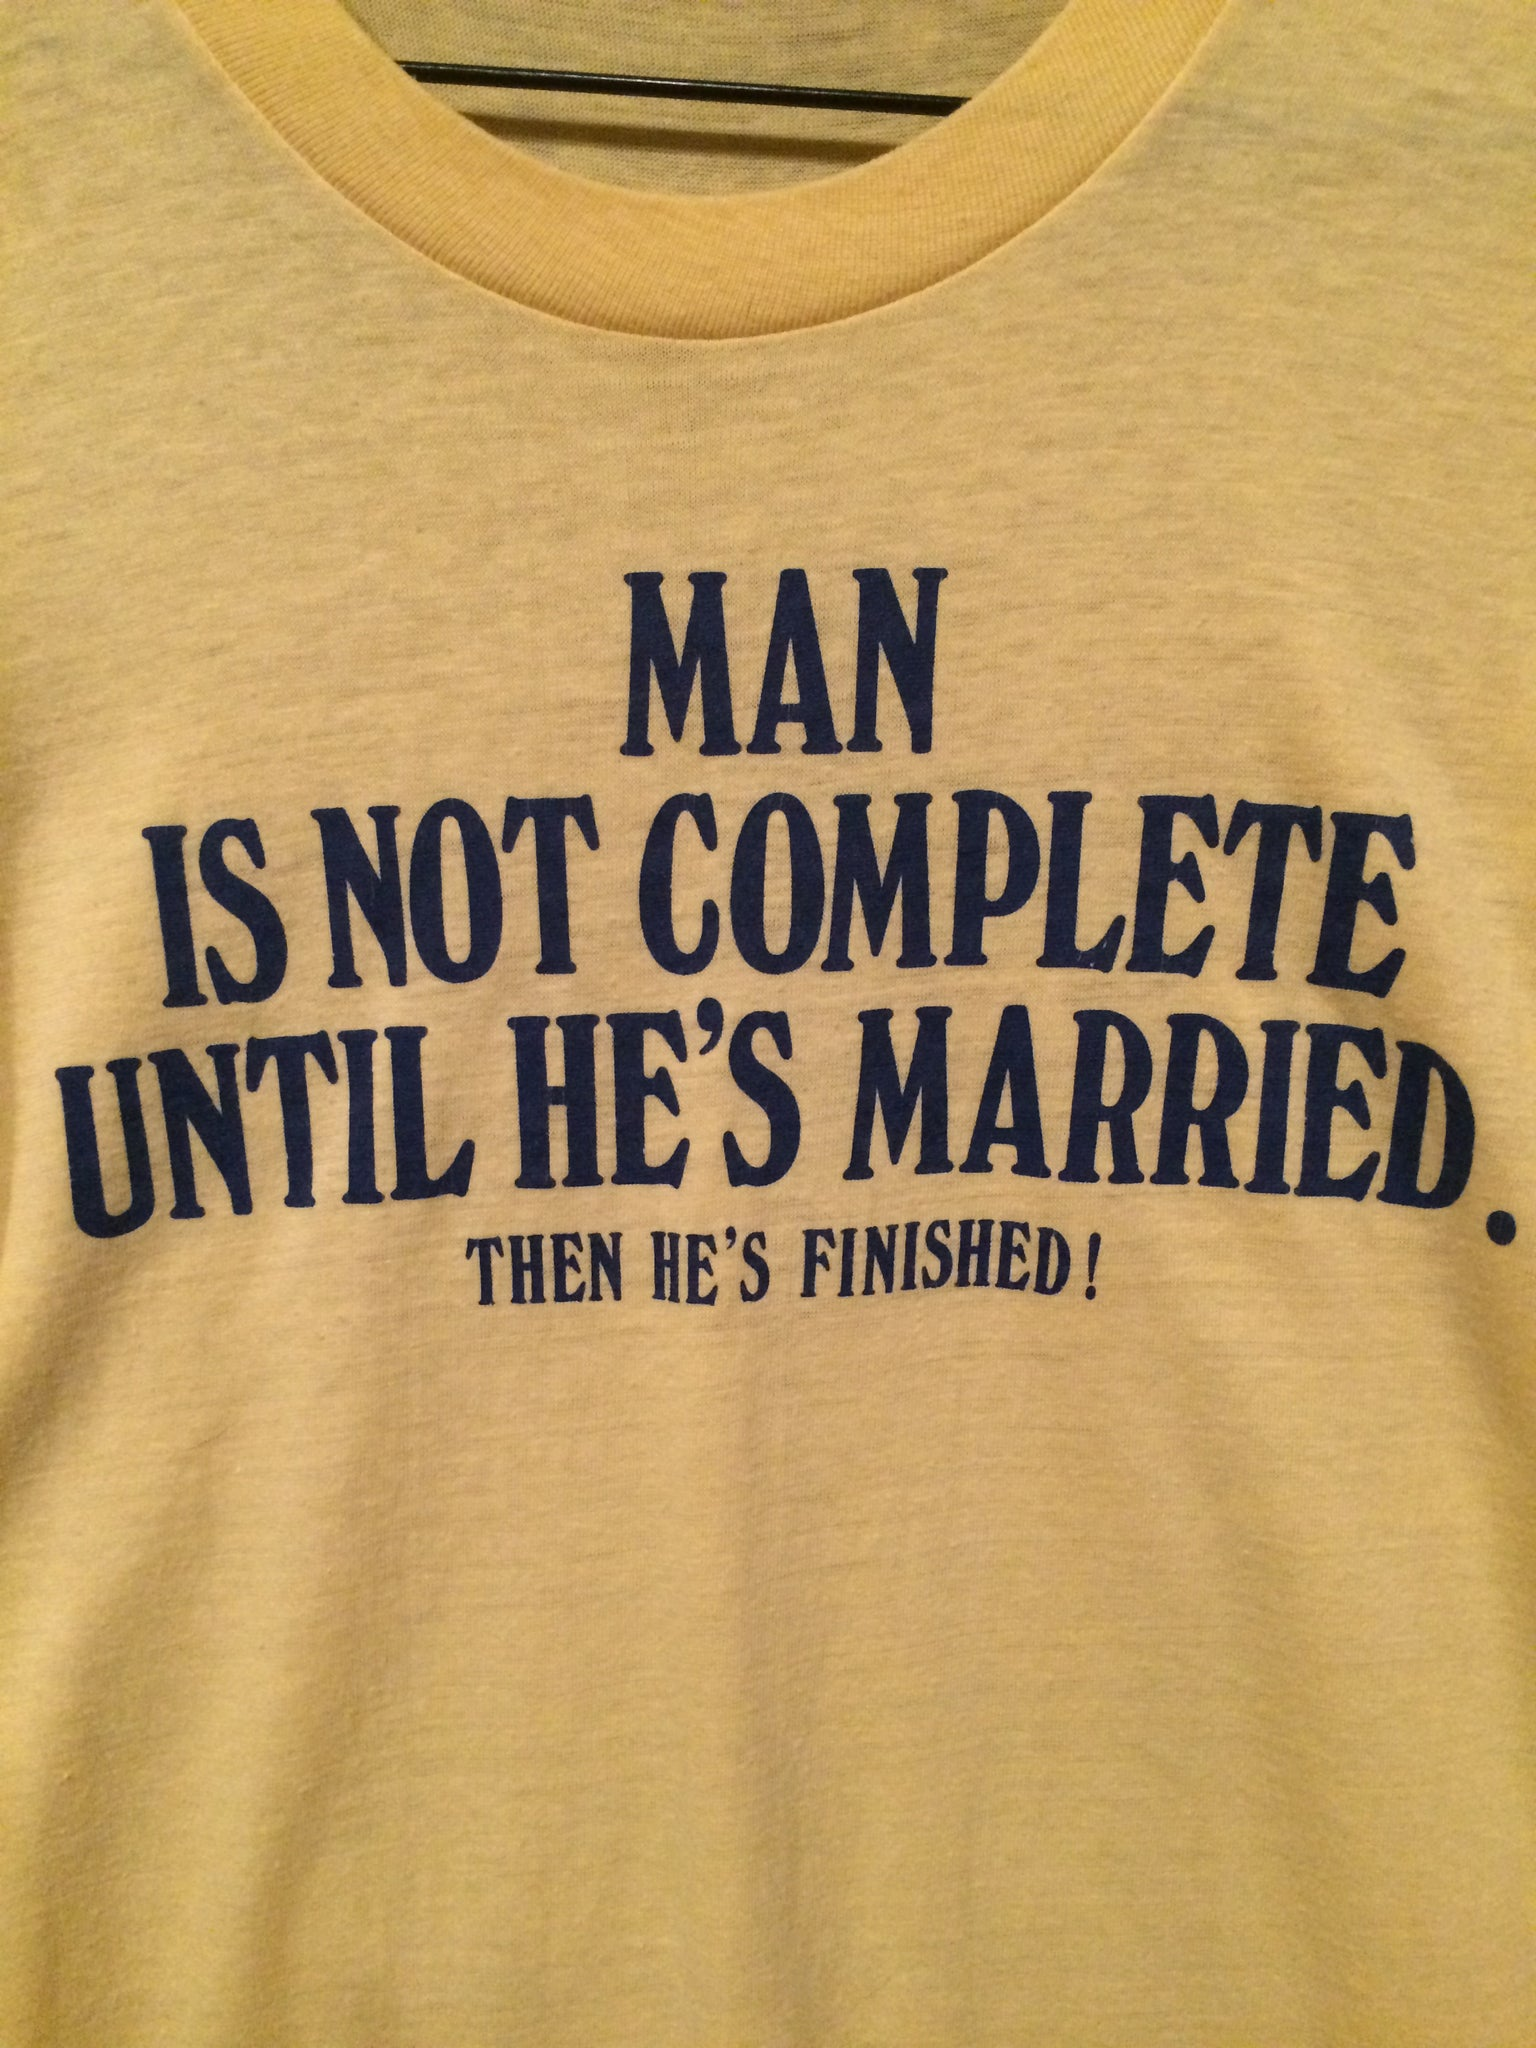 Funny 1980's Marriage Tee